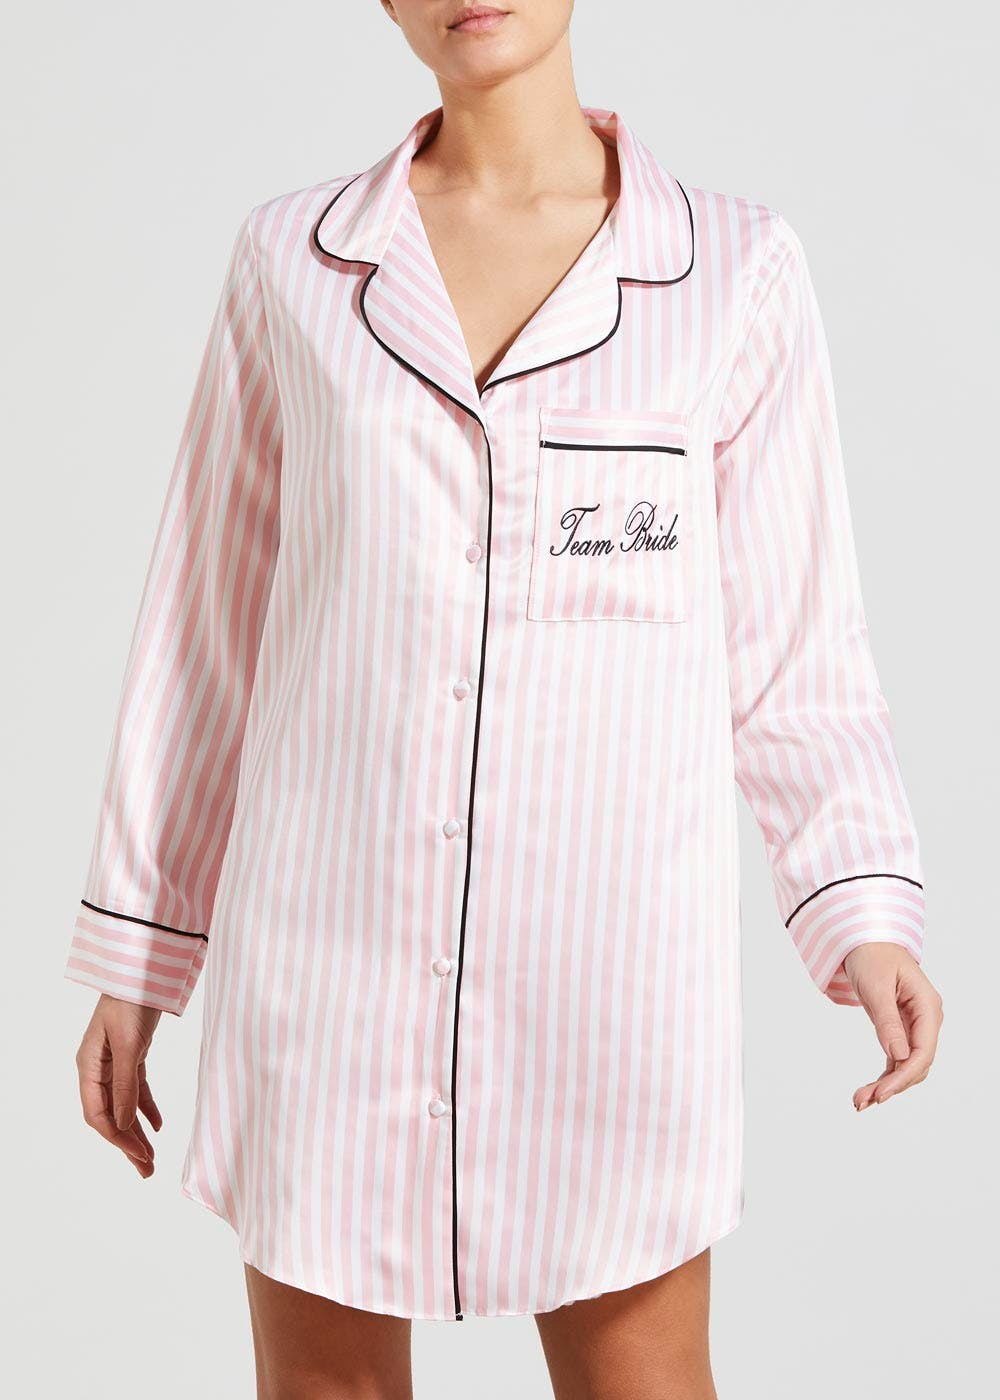 Team Bride Slogan Satin Nightshirt – Pink – Matalan 0153d040d